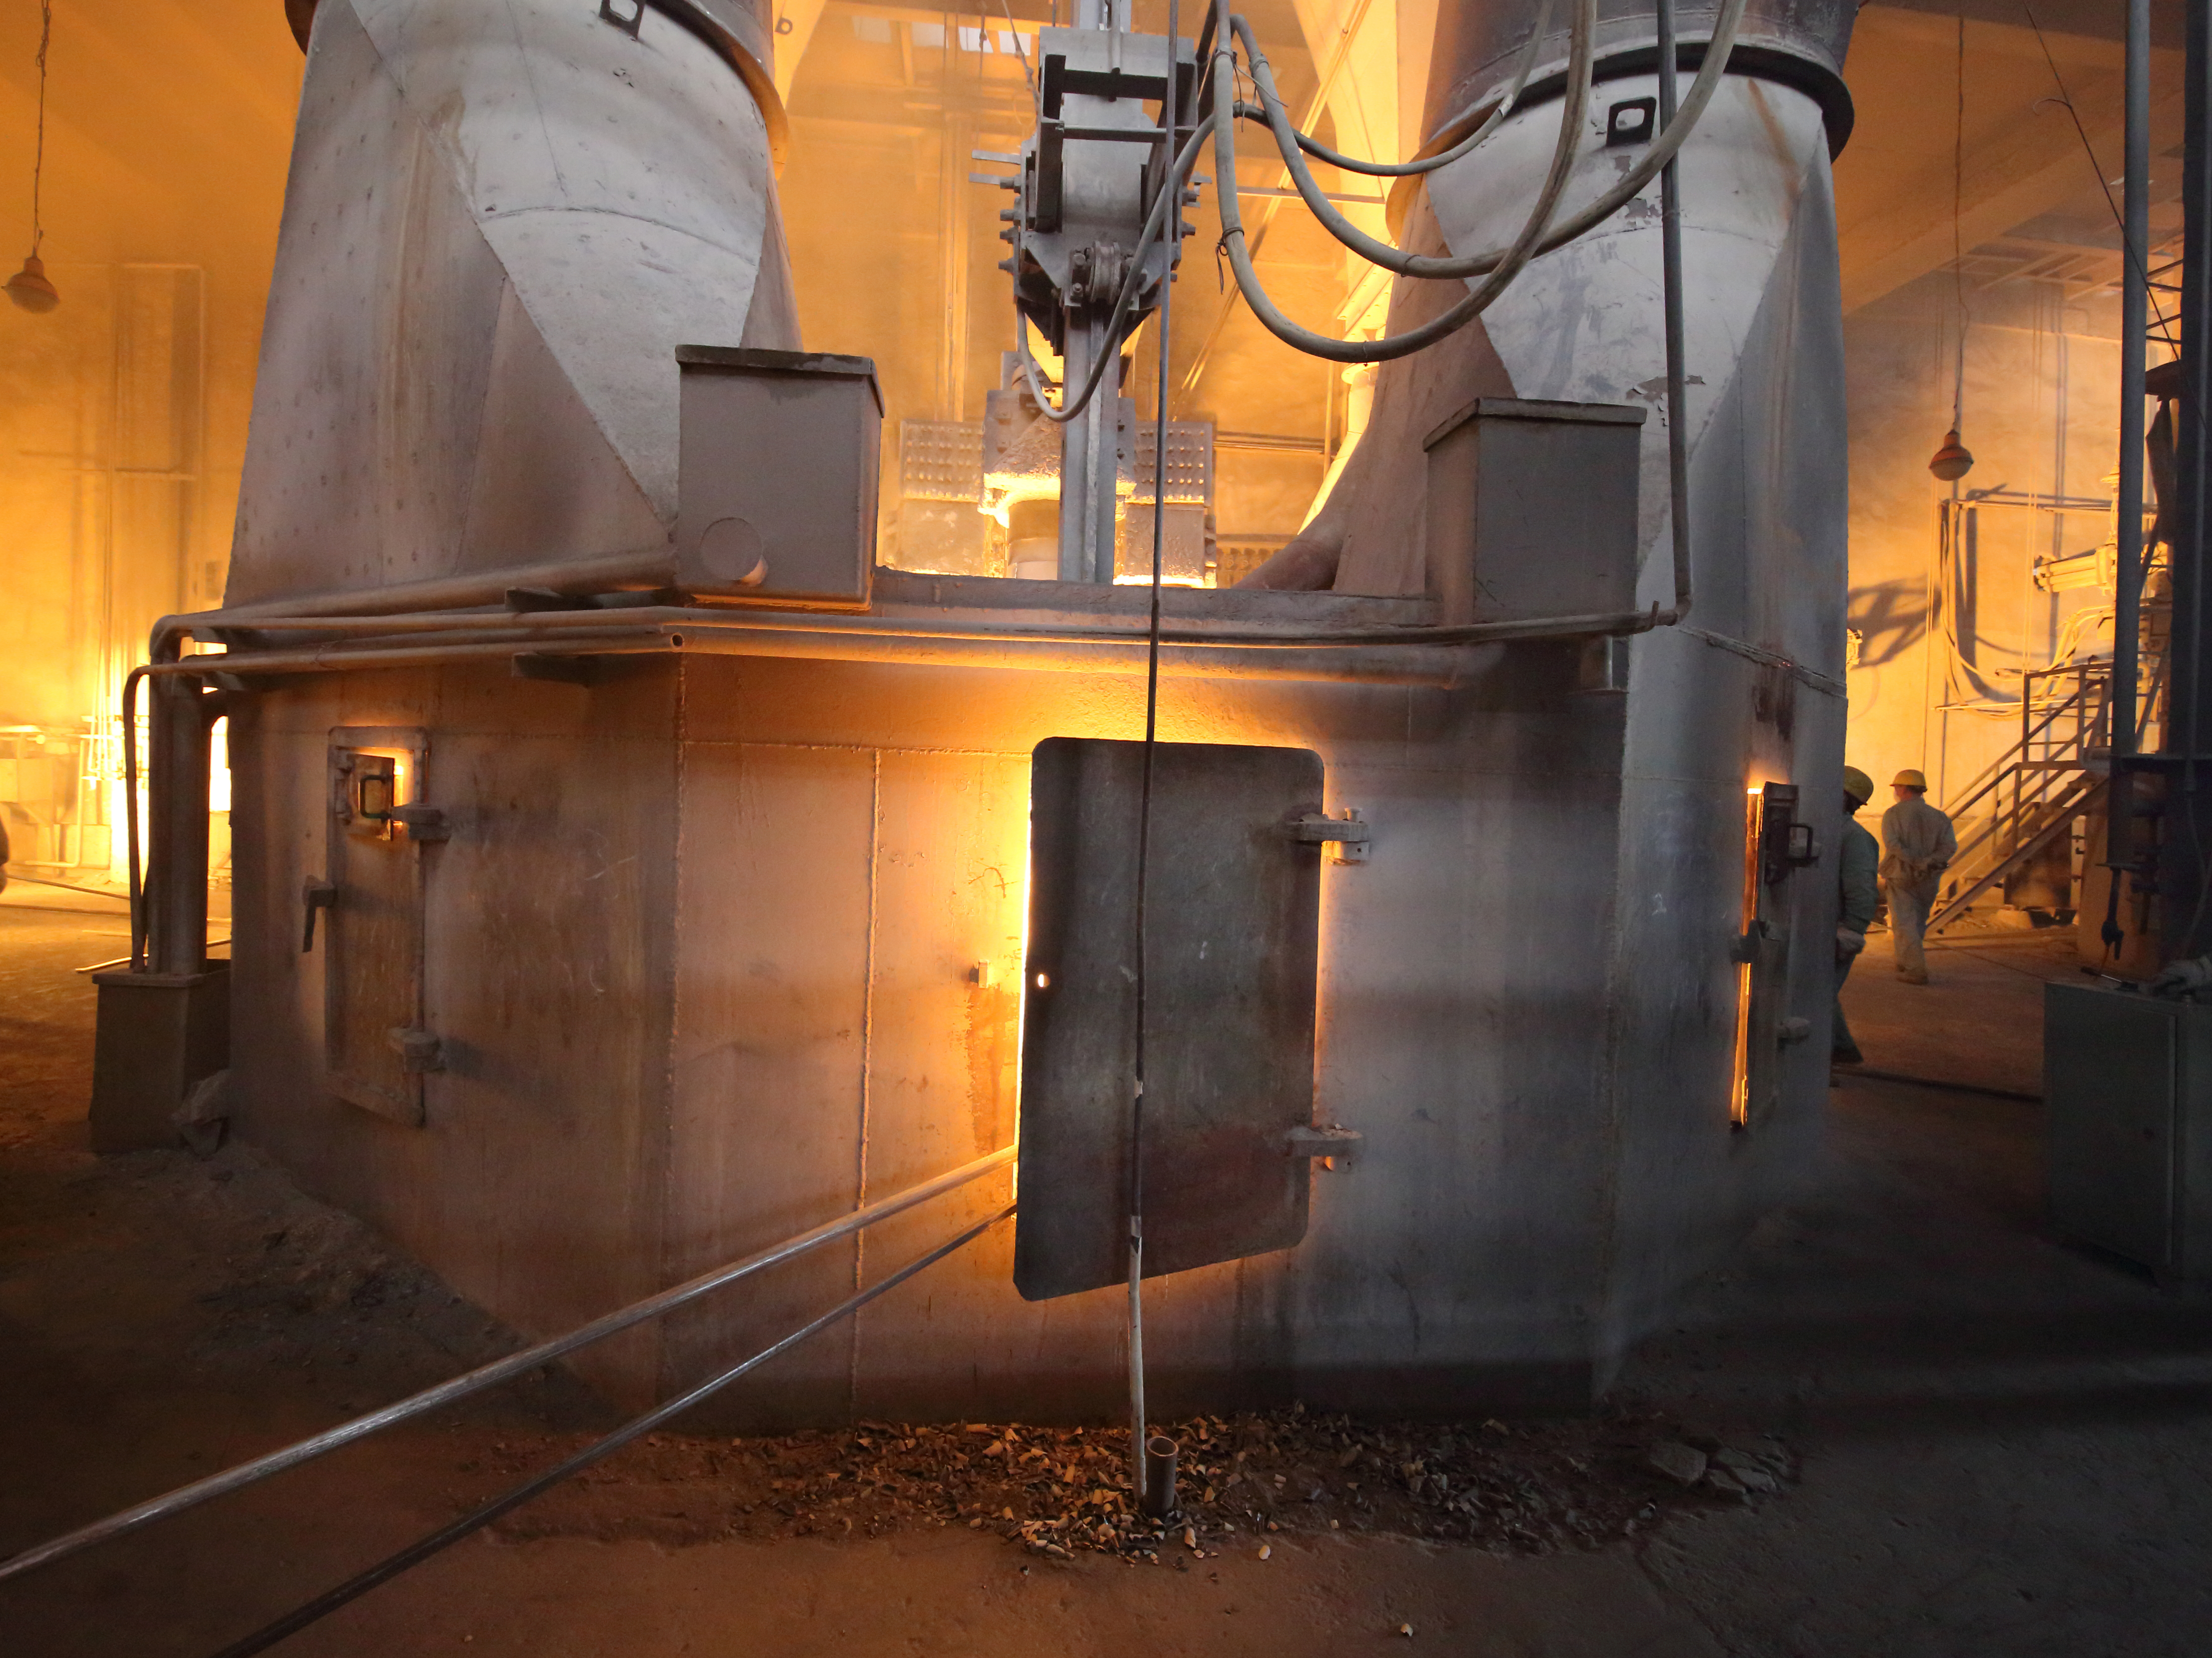 The temperature inside furnace is as high as 1300 deg. C. All raw materials are melted, reacted and form another mineral crystal. This process is called fusing and it always takes some hours.